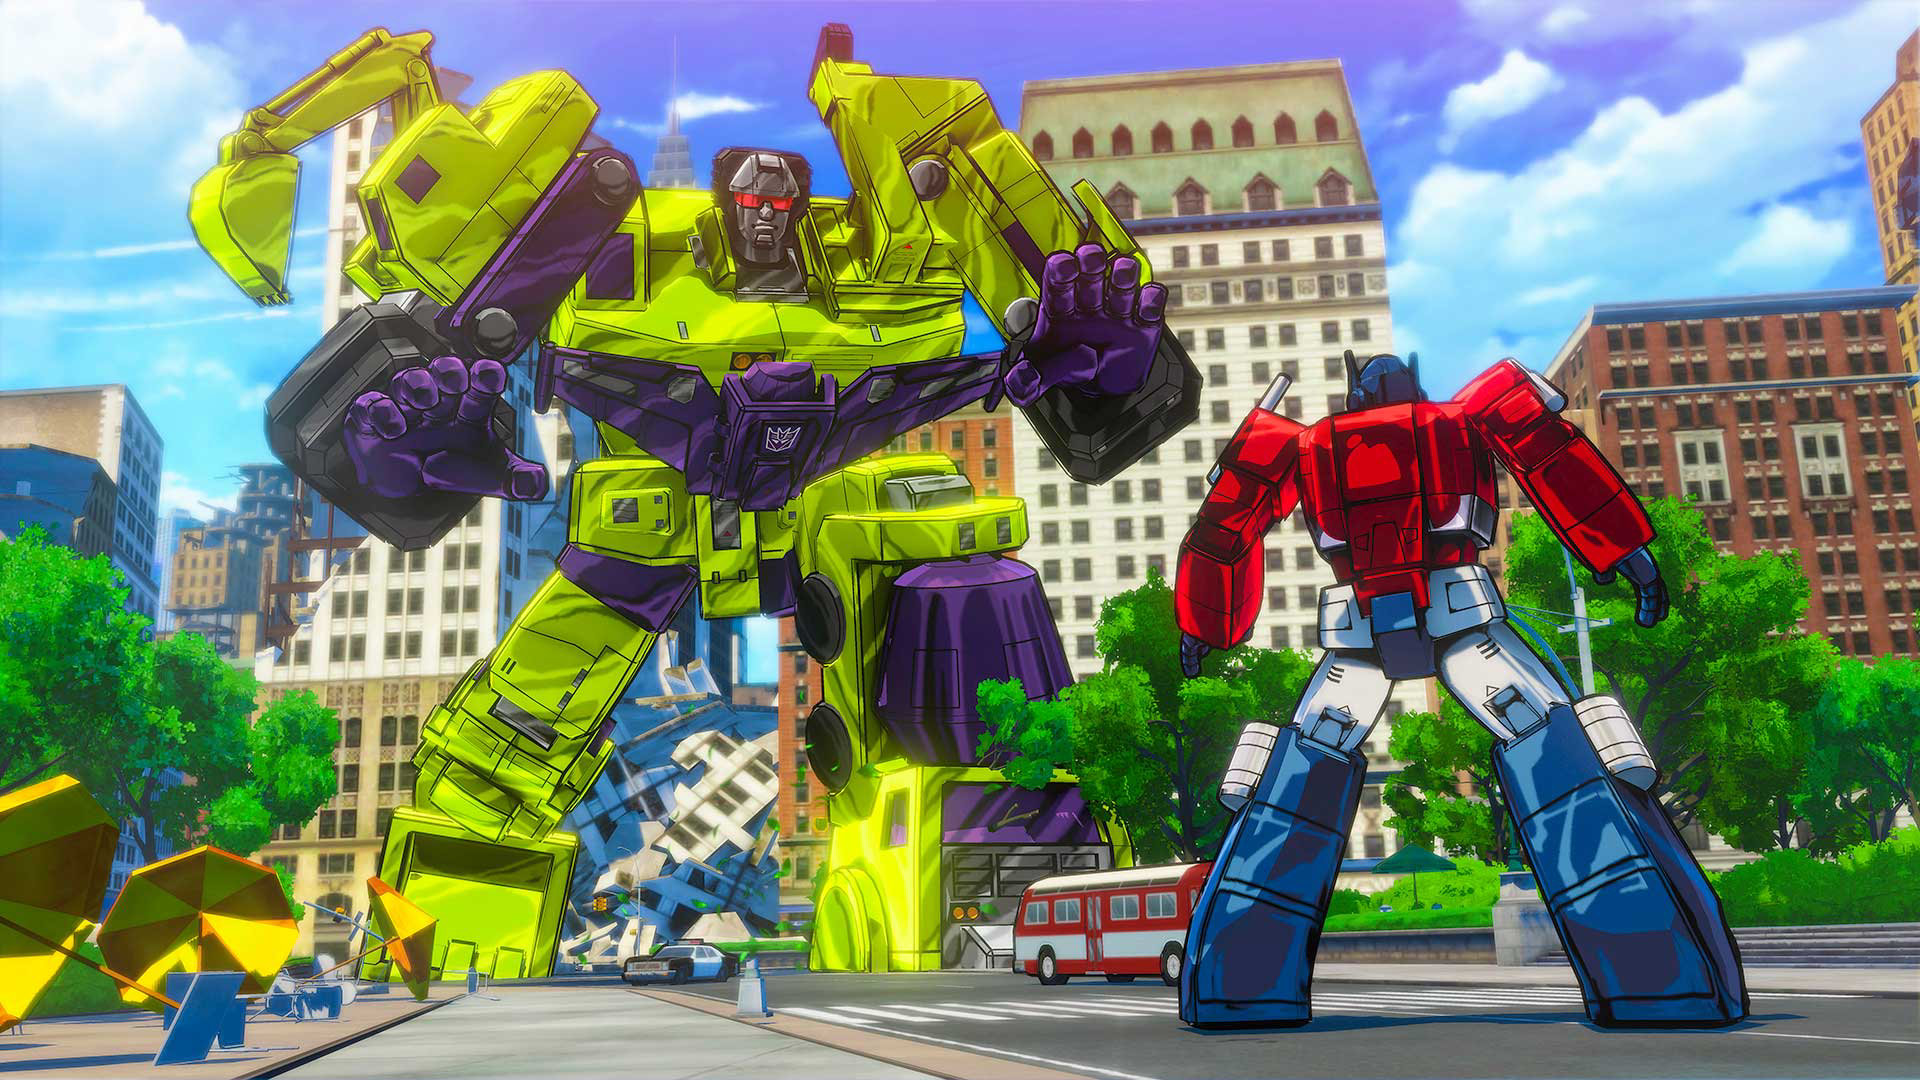 transformers from animation to live action essay The live-action transformers films have developed a winning formula of cgi  bombast and  12 it's the citizen kane of animated robot movies.